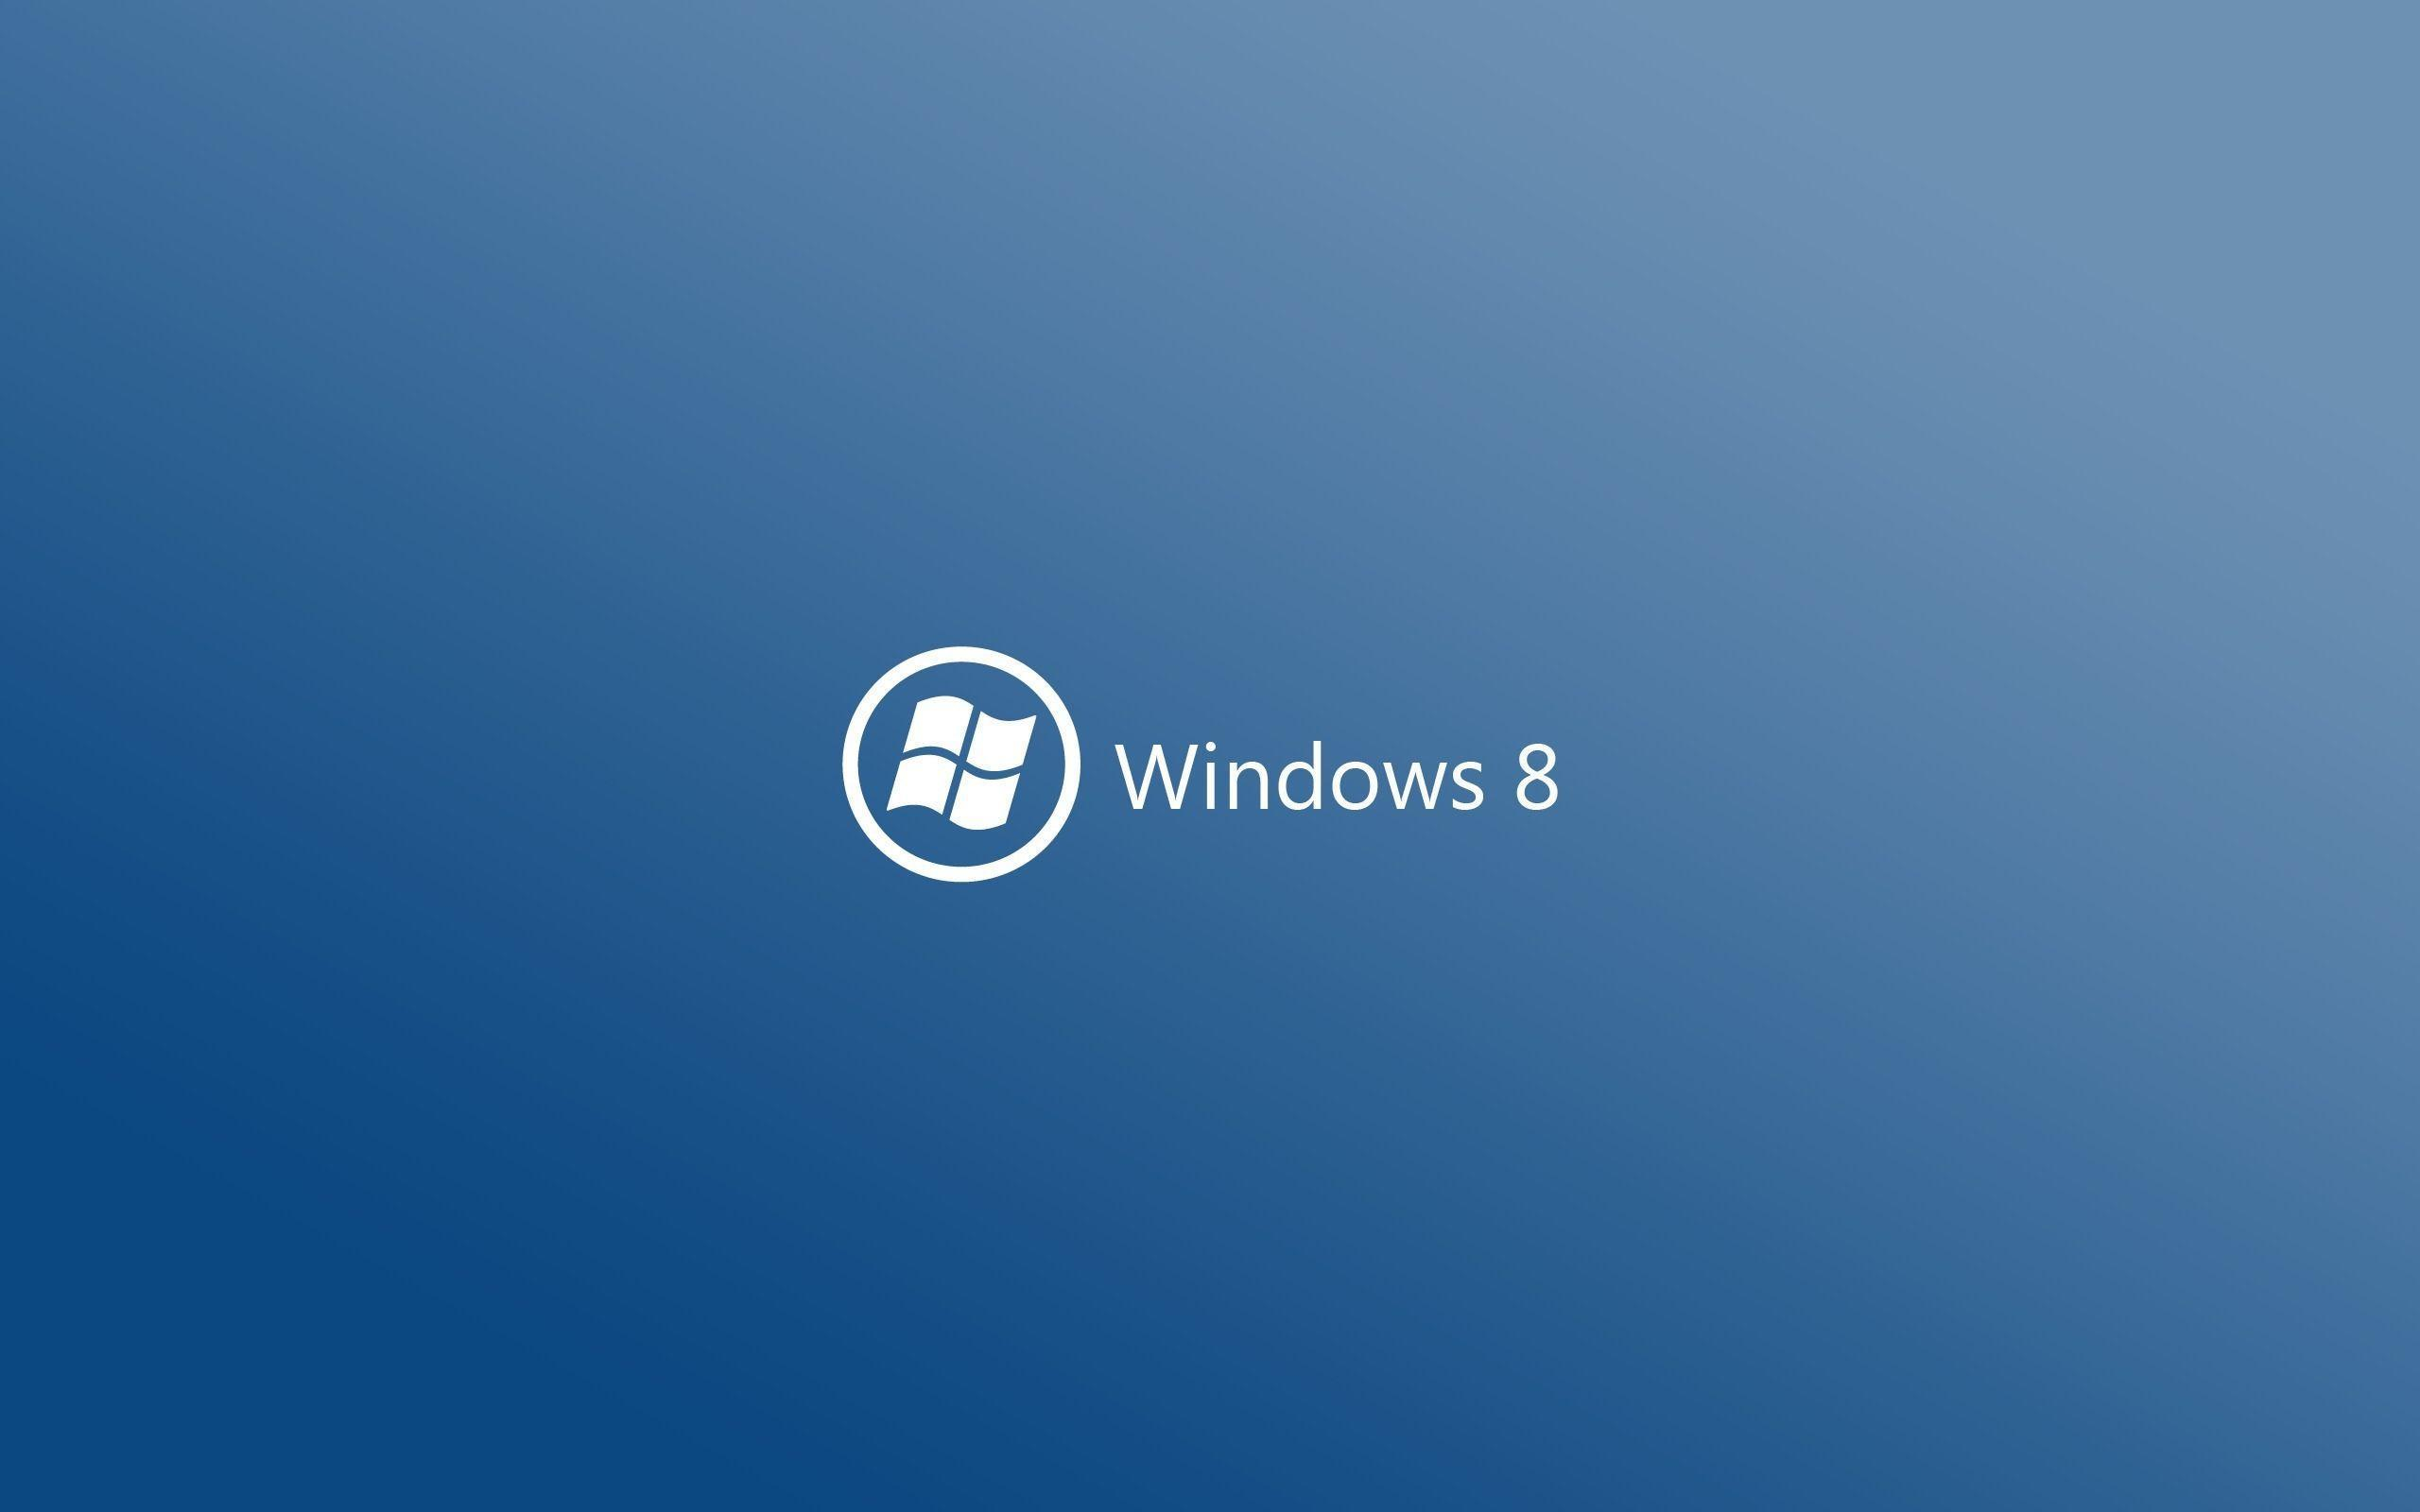 Wallpapers Windows 8 Hd Backgrounds Wallpapers 36 HD Wallpapers